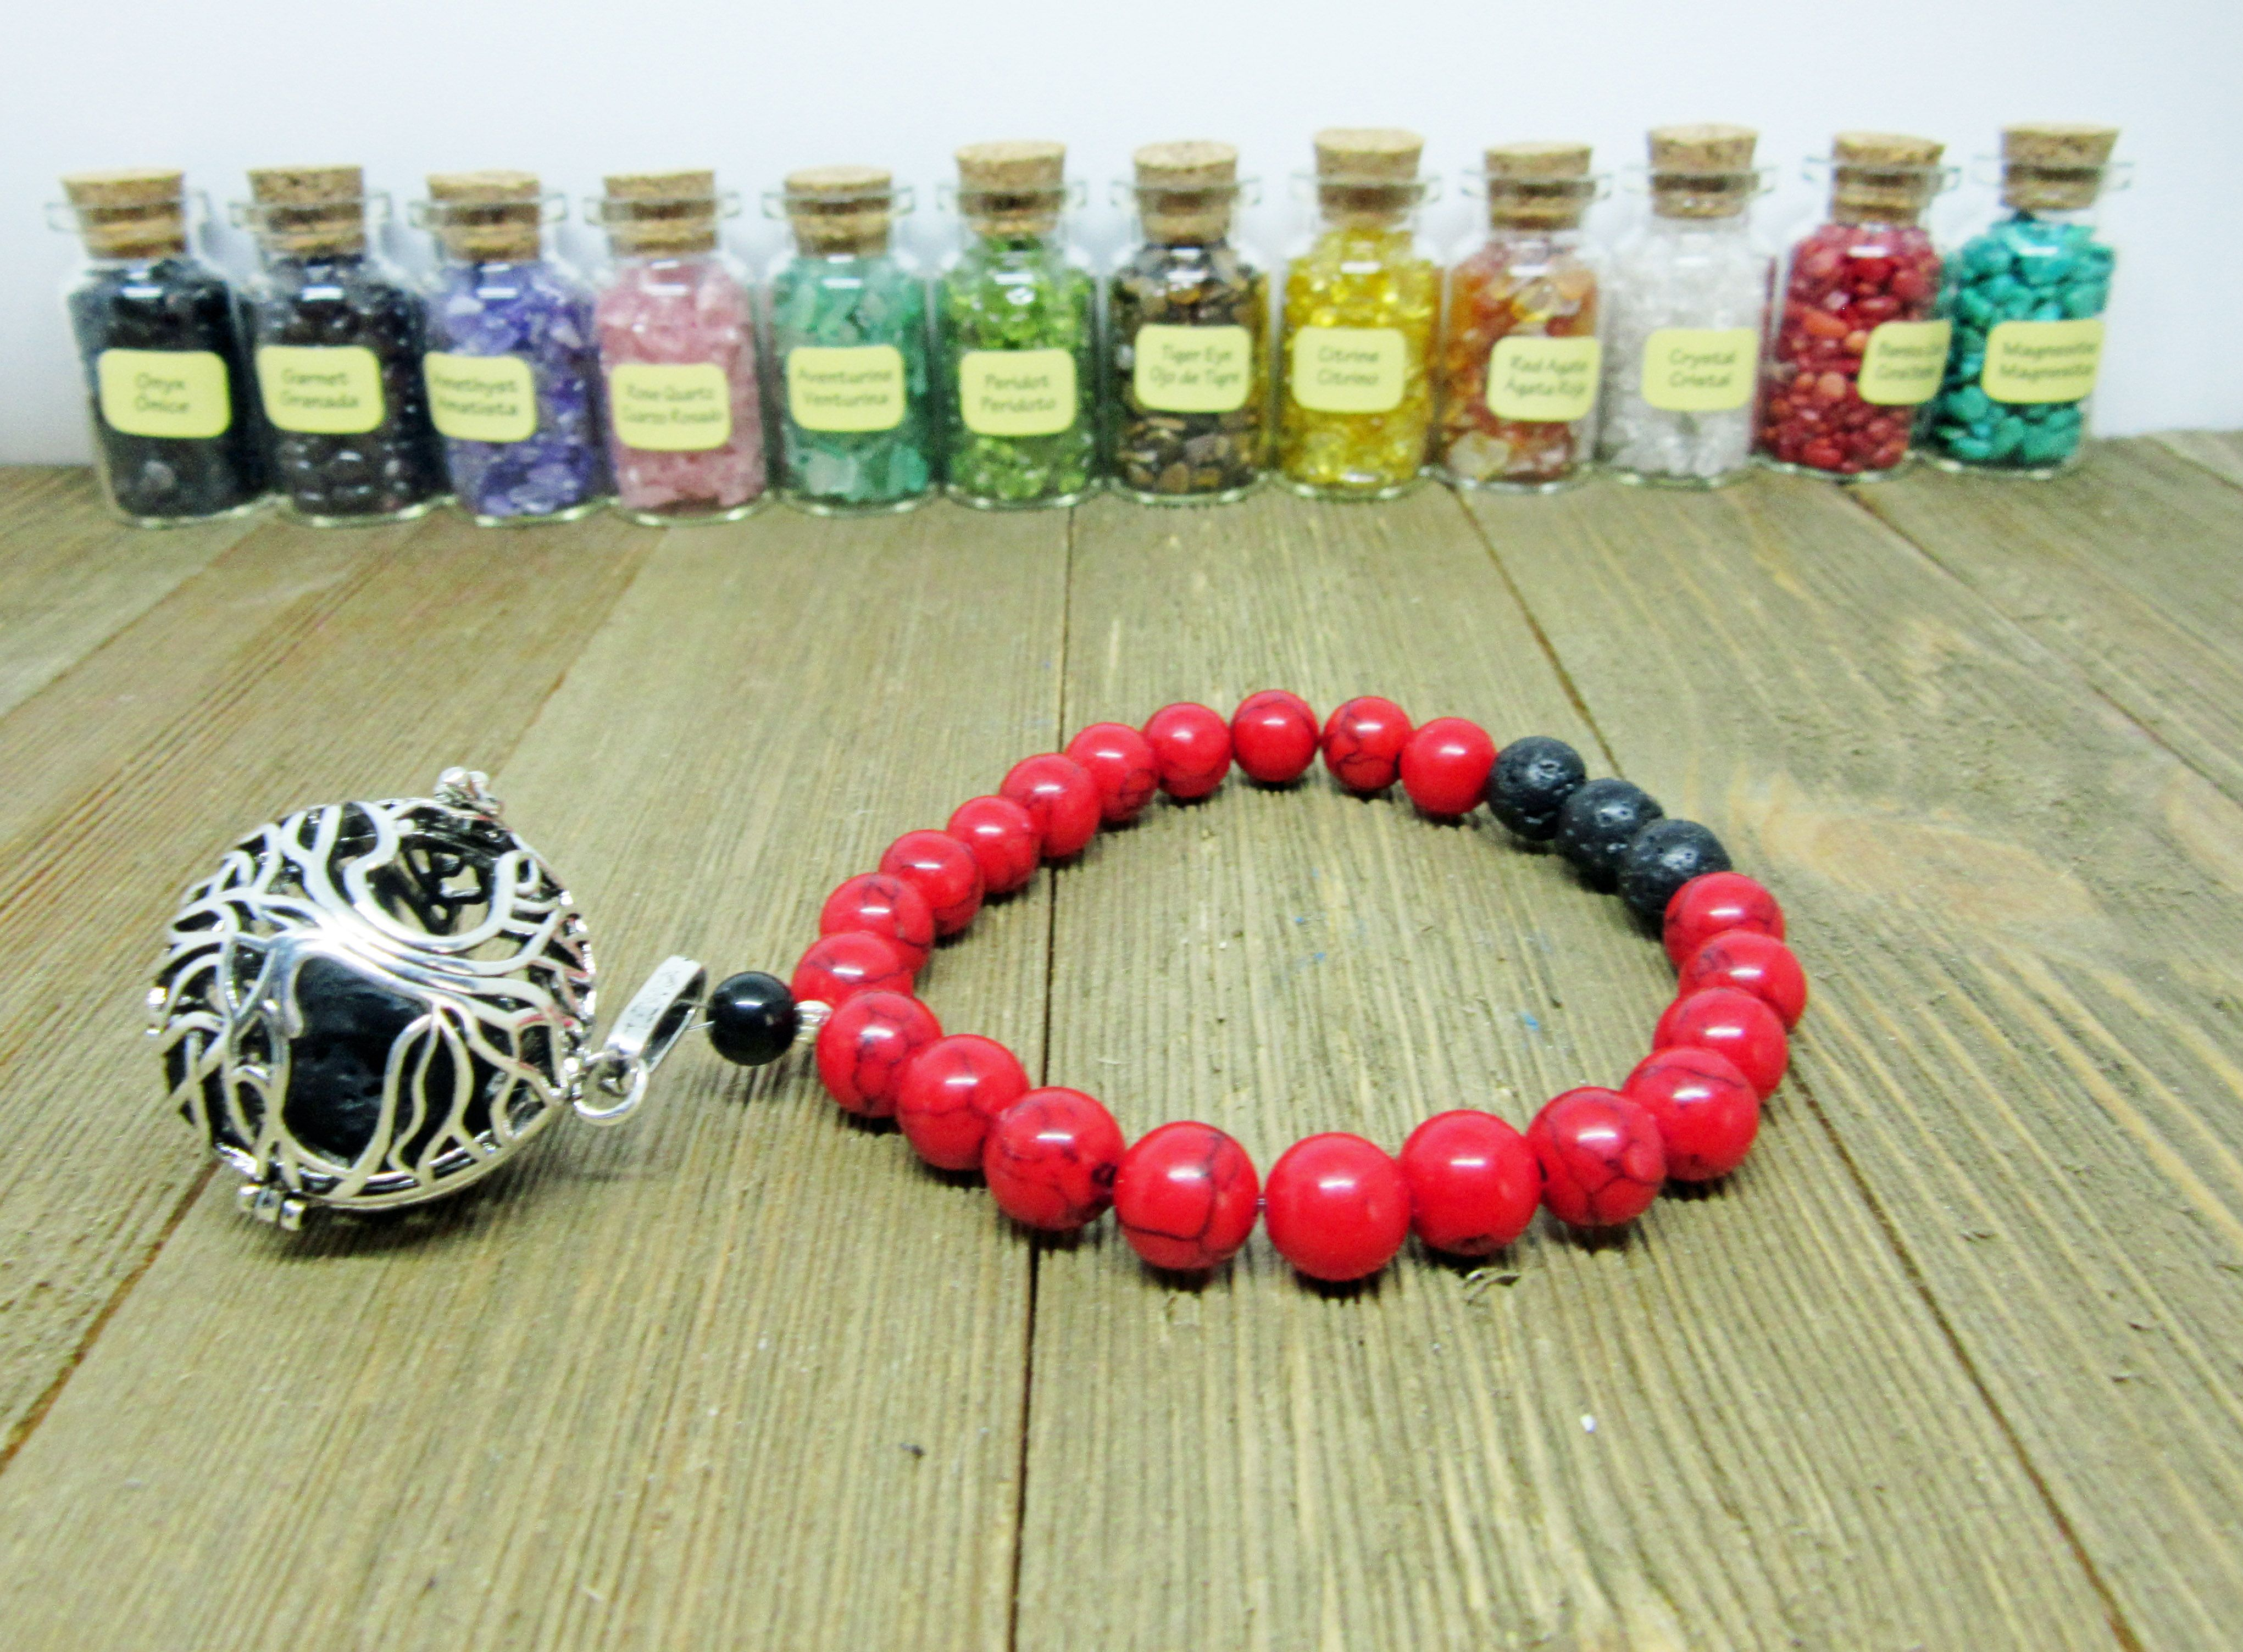 mala tibetan s prayer tibet bowl bodhi hands flags img buddhist bracelet singing yoga own products of wrist